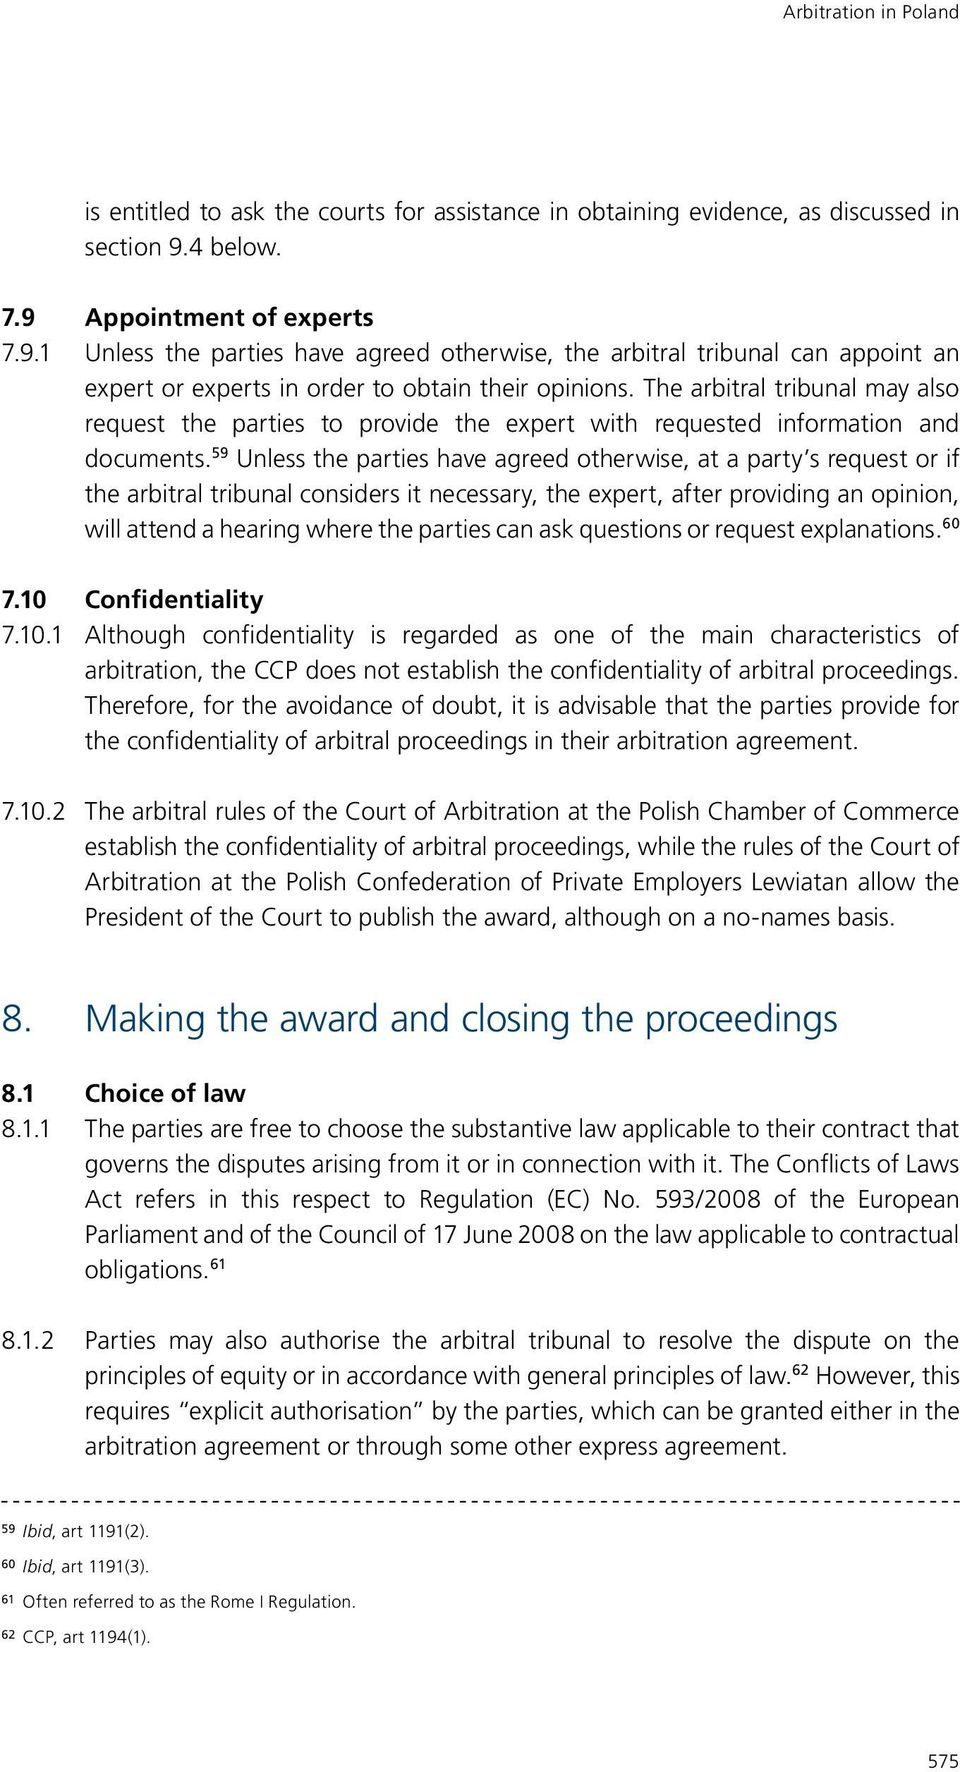 The arbitral tribunal may also request the parties to provide the expert with requested information and documents.